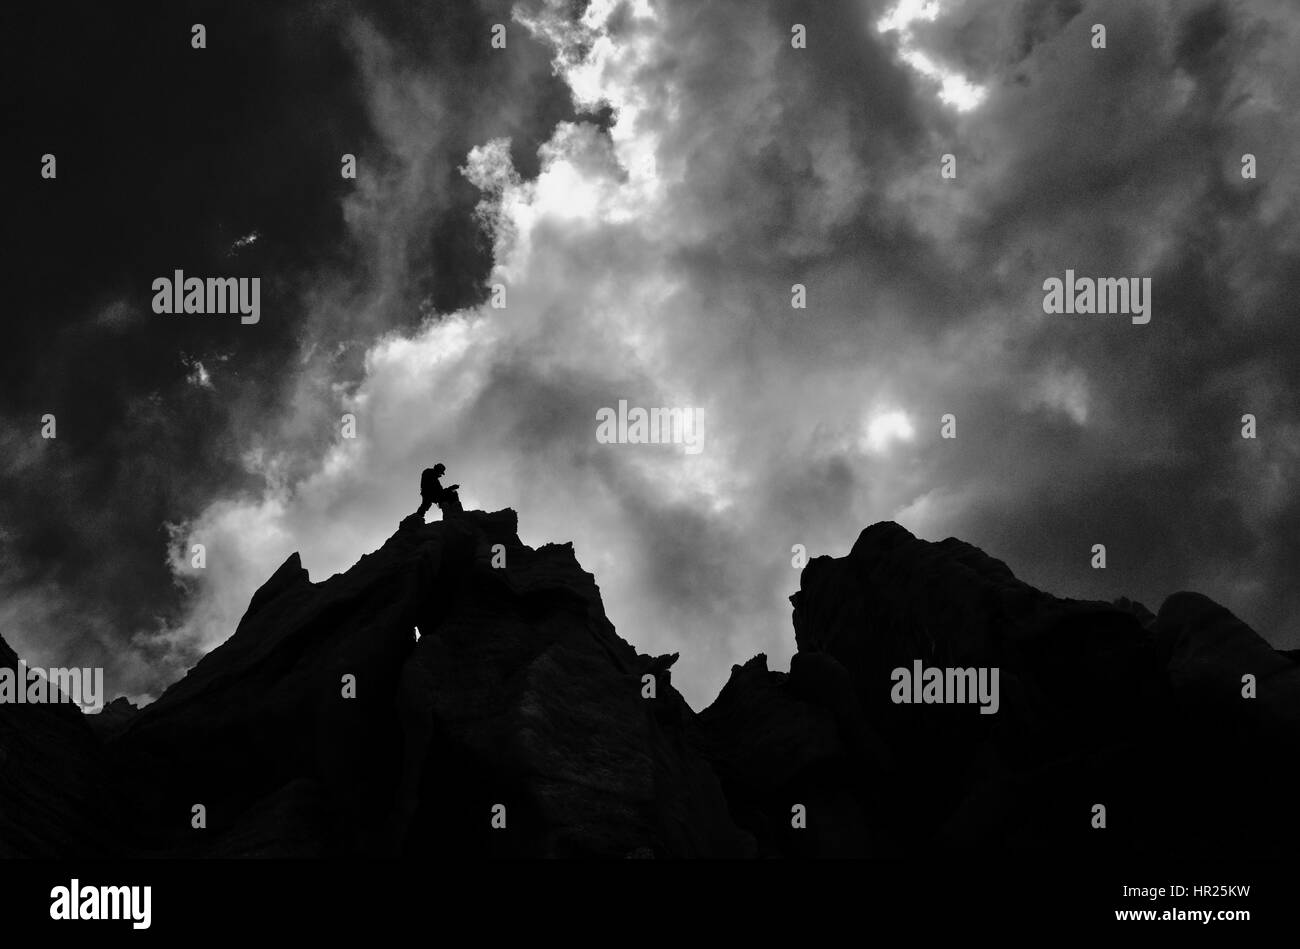 Dramatic lighting on a climber coiling rope at the top of a climb - Stock Image